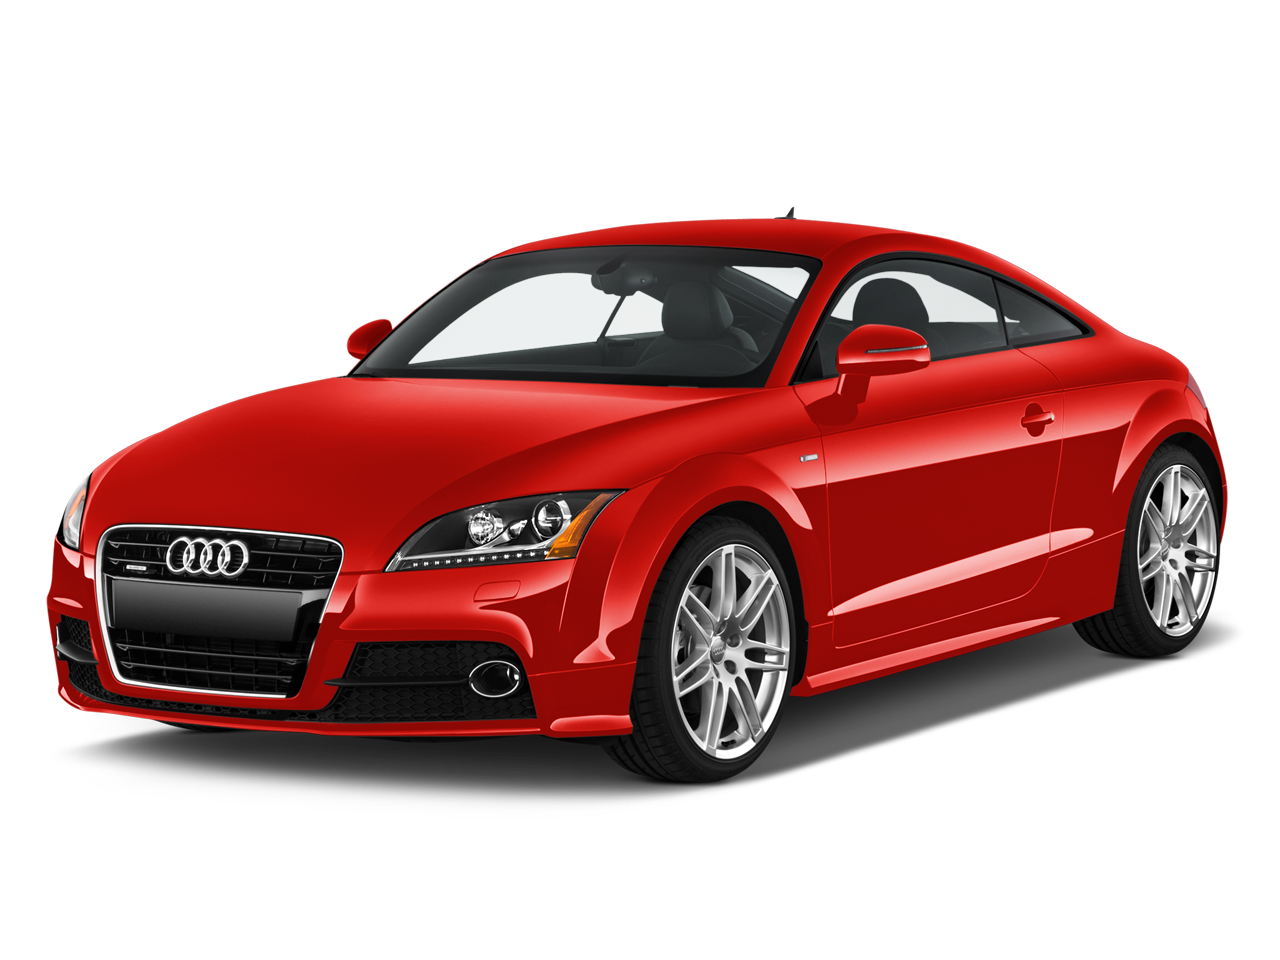 Audi PNG auto car images, free download.